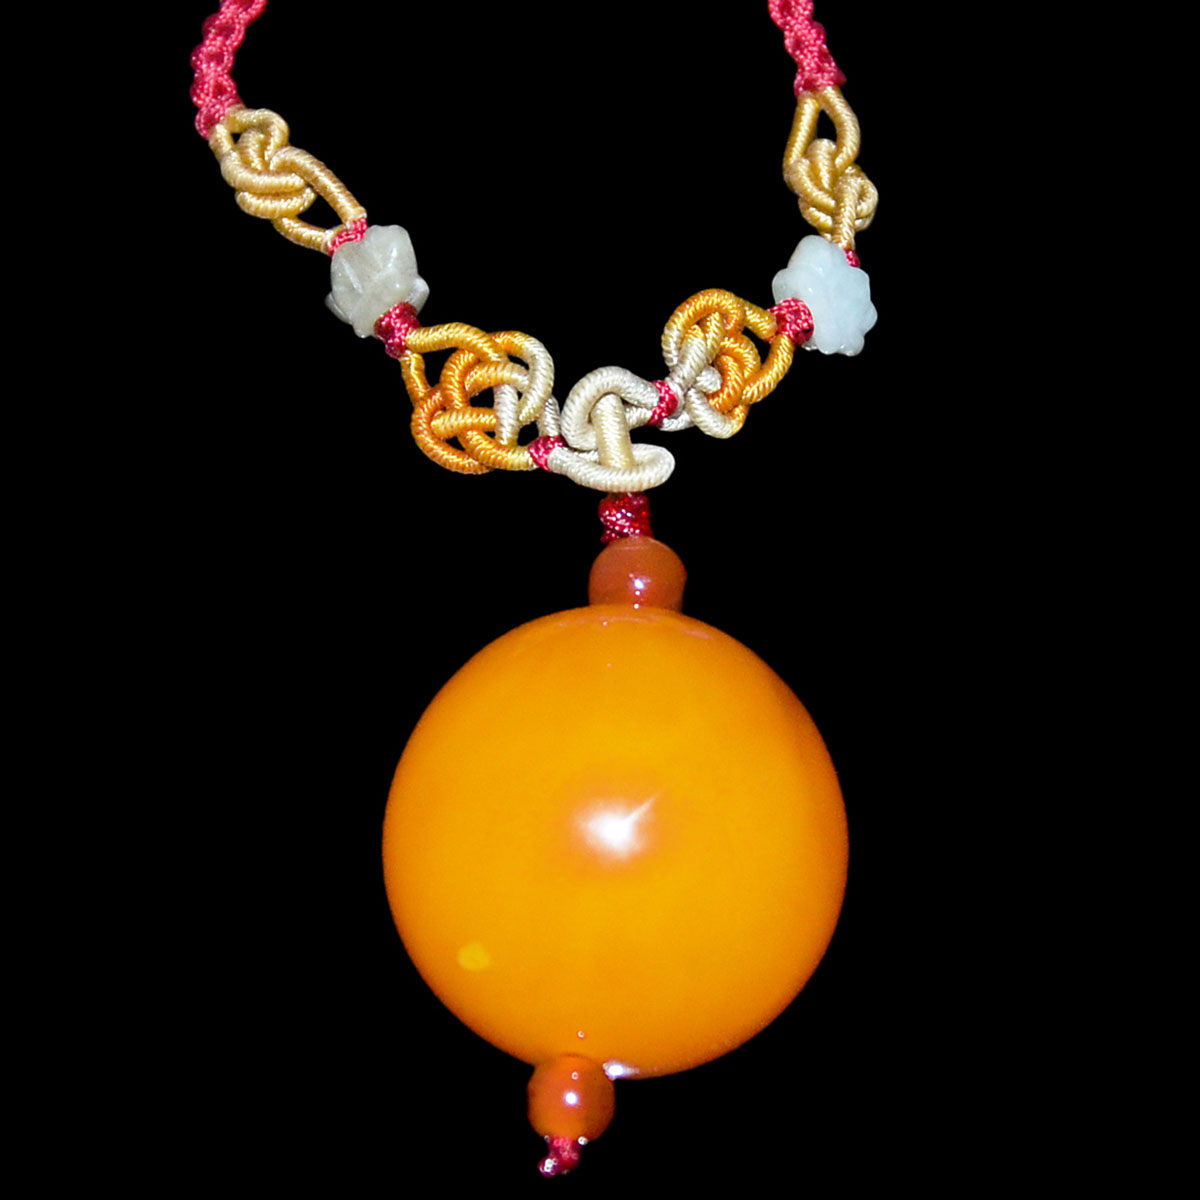 Lot 32 - 西藏朝珠圓蜜蠟項飾連珠鏈 Tibetan Beeswax Amber Bead Pendant Necklace. Diameter: 1¼ in (3.2 cm)  Weight: 25 g.